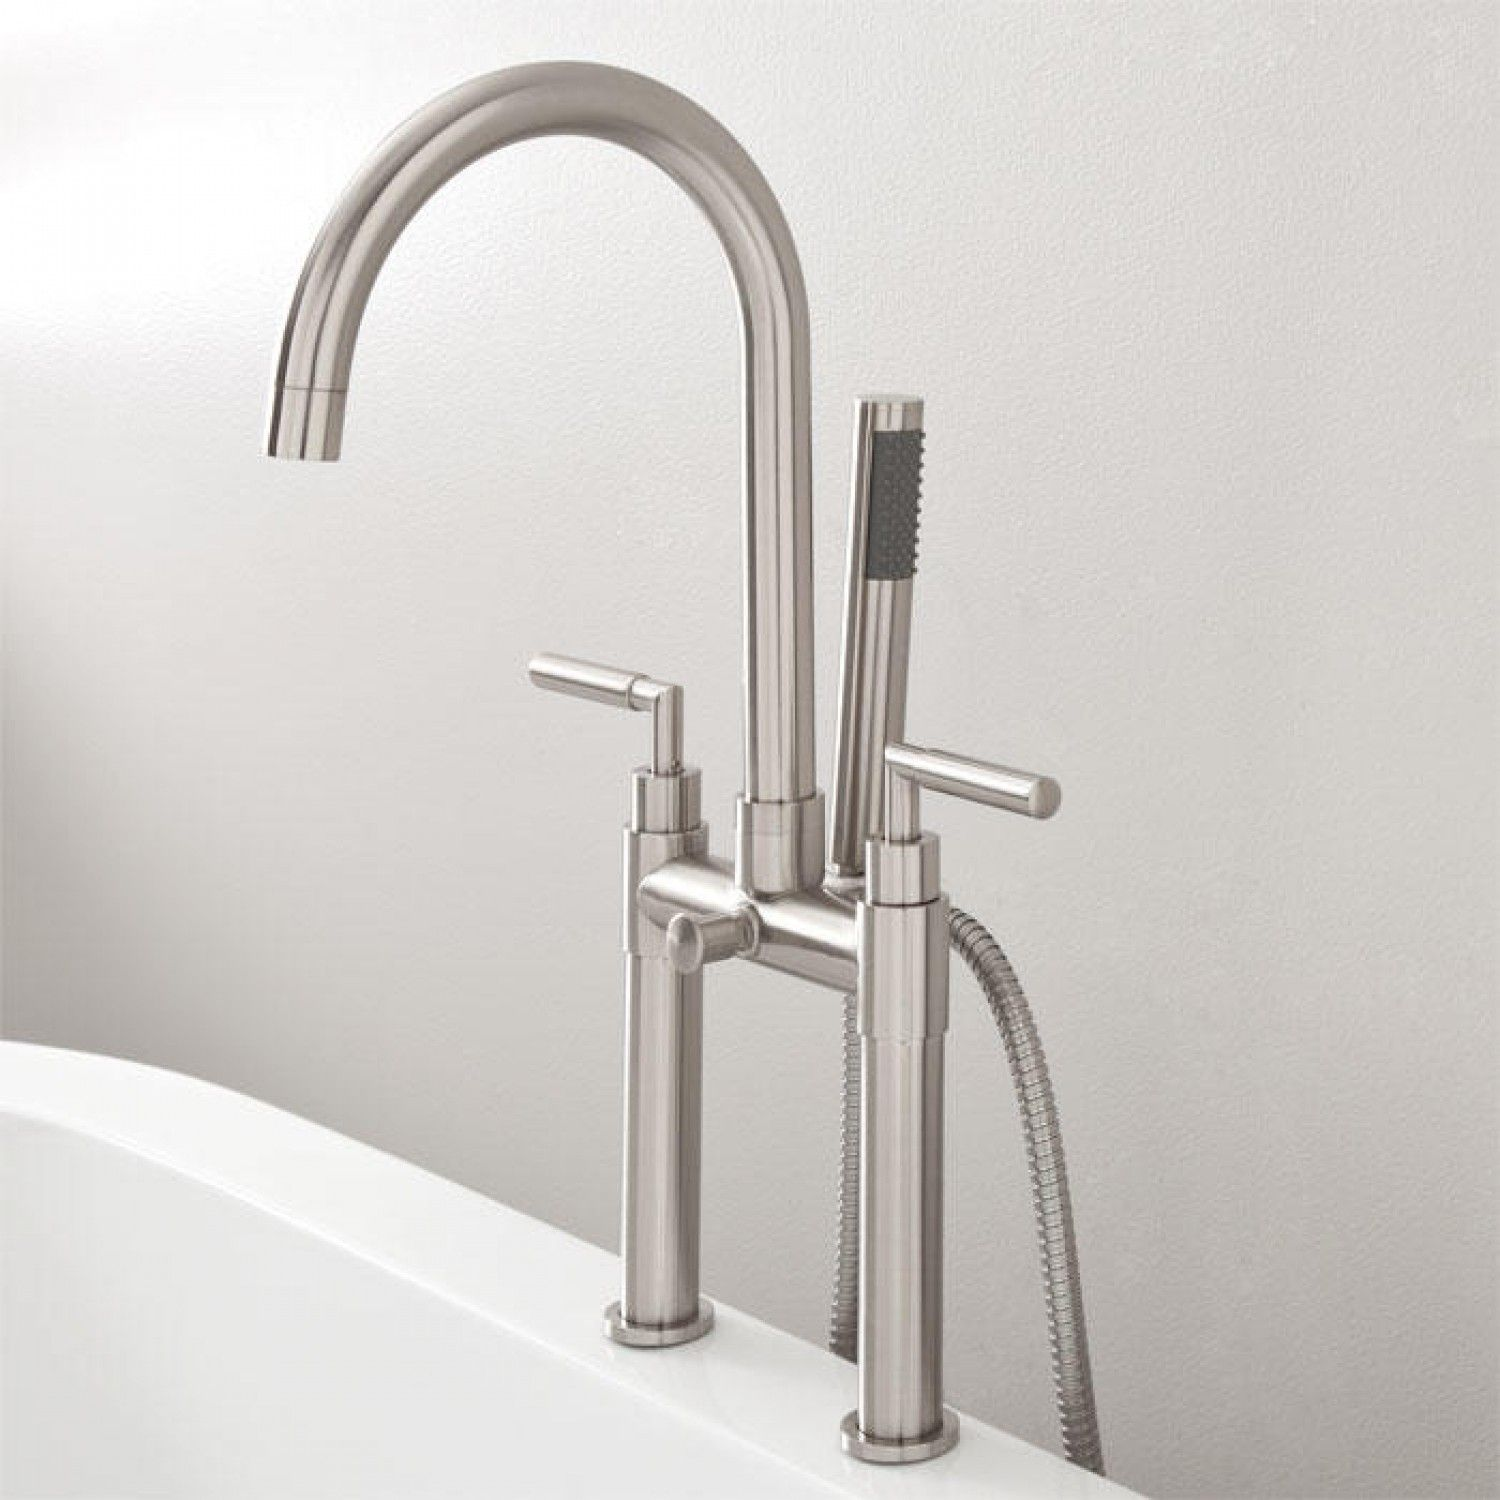 Desma Deck Mount Tub Faucet And Hand Shower Tub Mounted Faucets